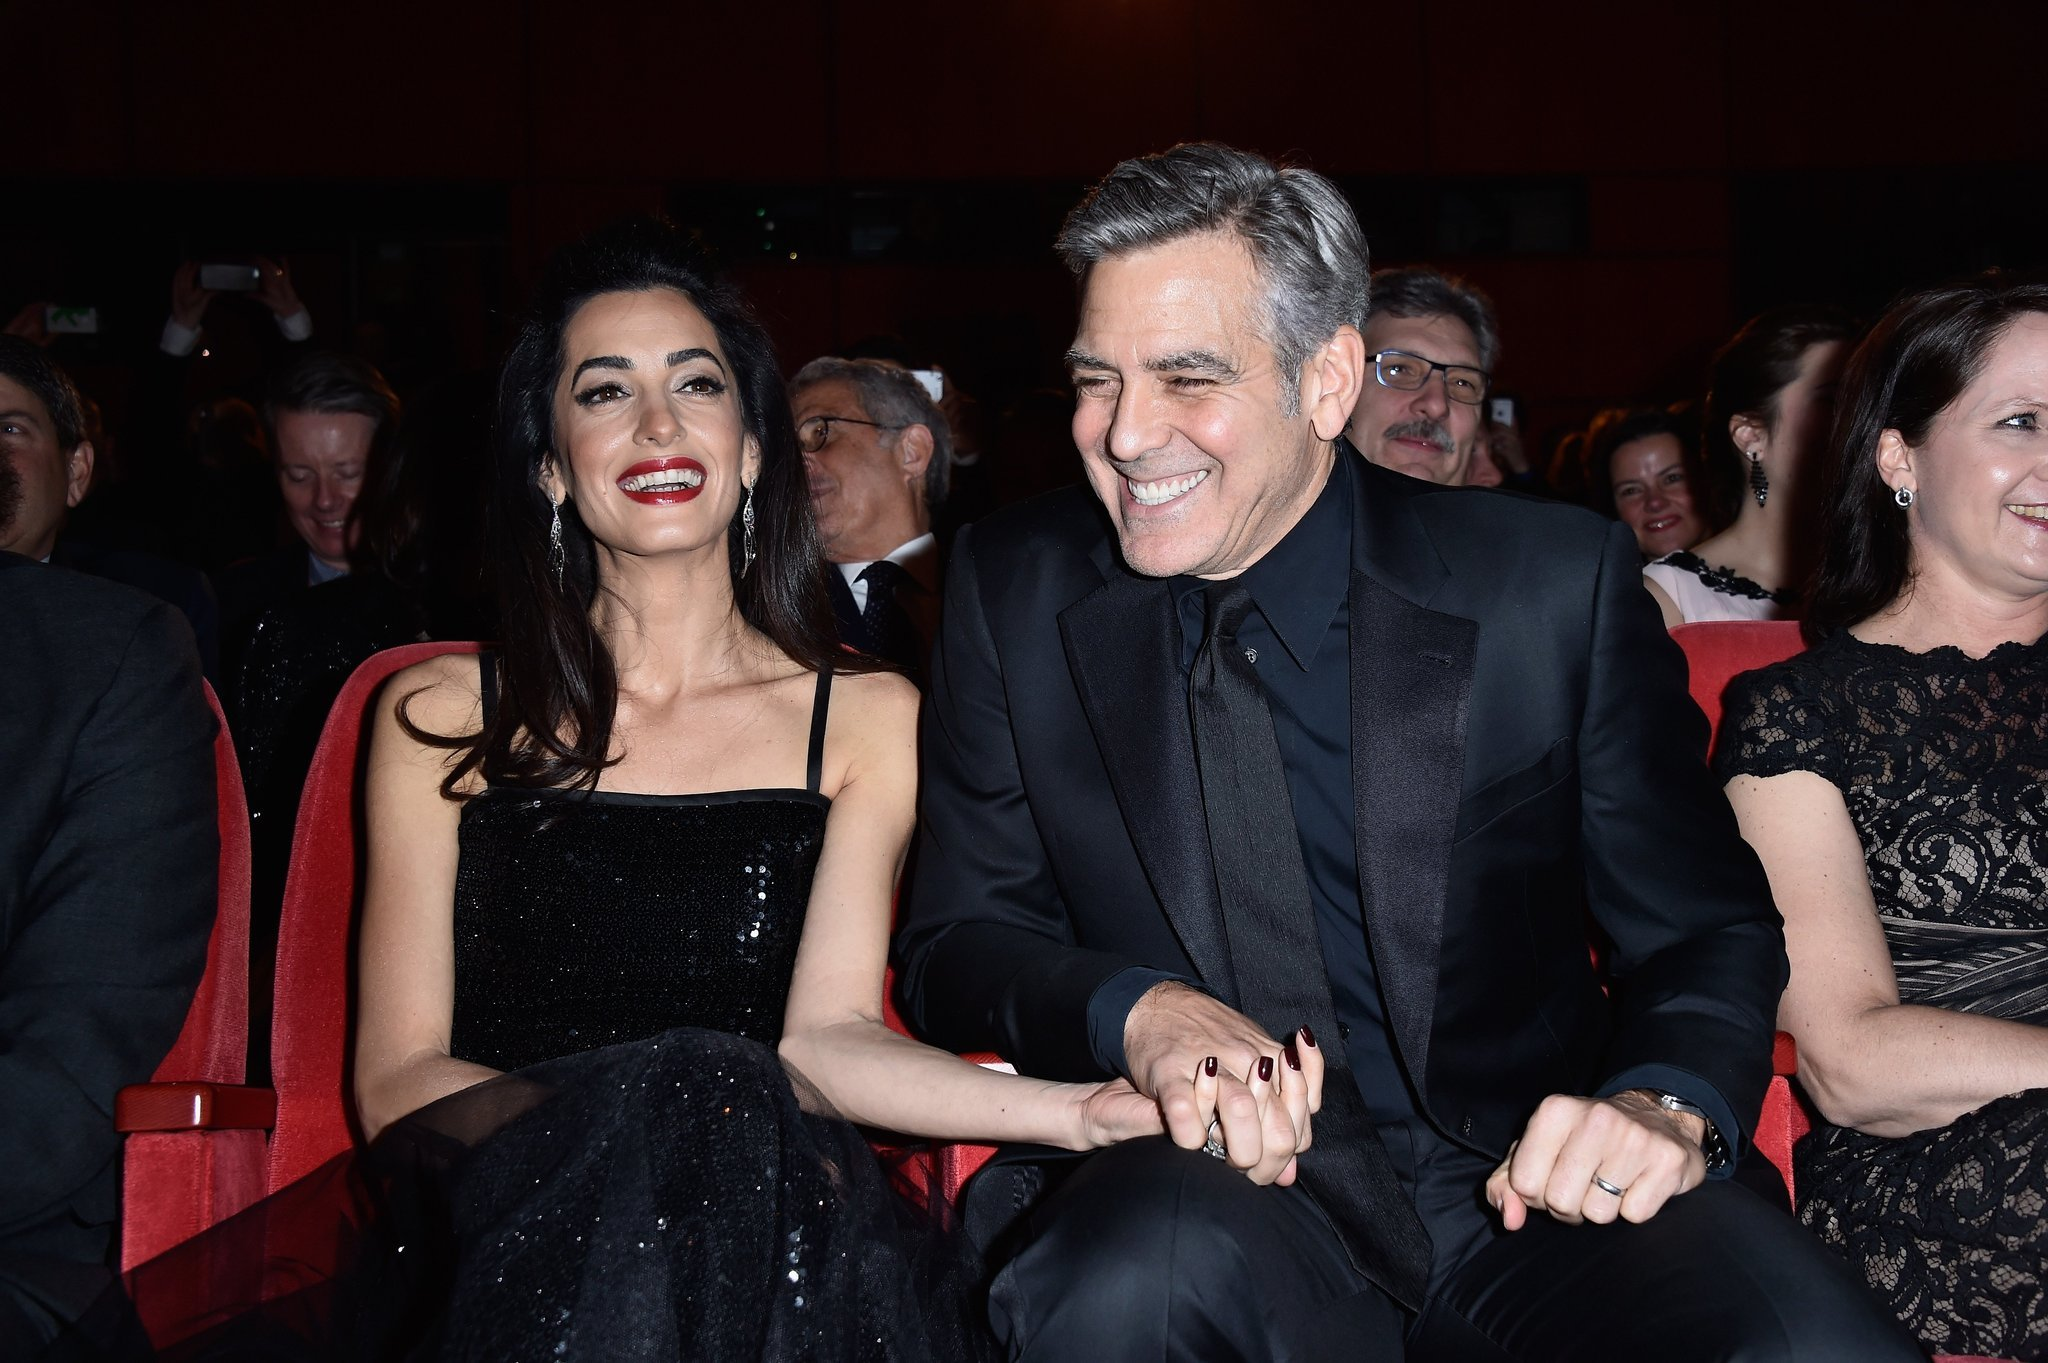 George and Amal Clooney welcome birth of twins